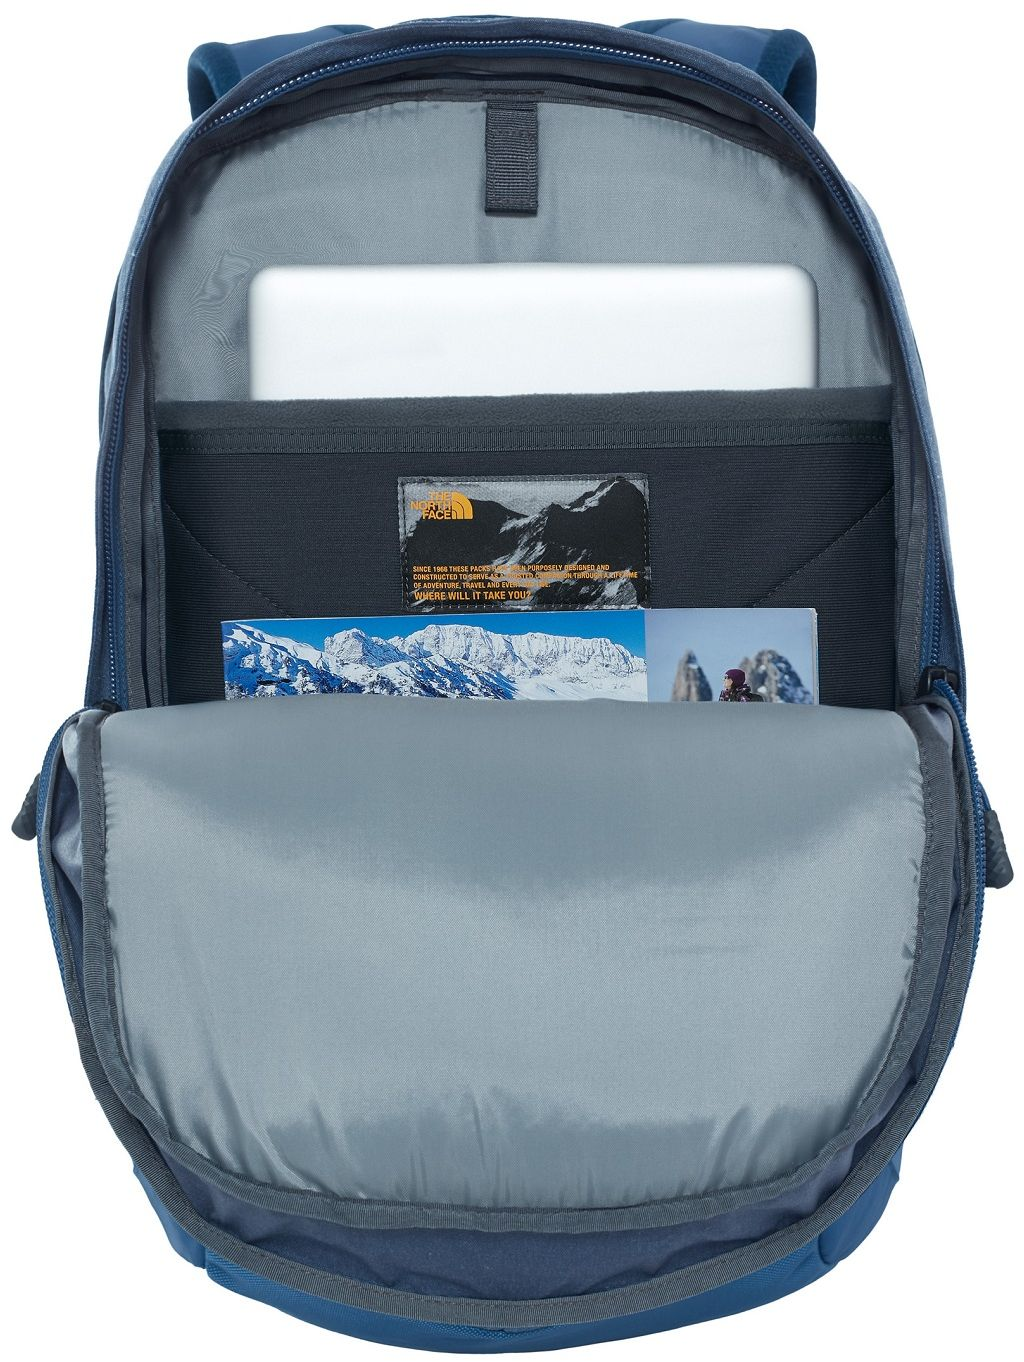 The-North-Face-Tnf-Borealis-28-L-cartable-randonnee-Sac-a-dos-Laptopfach-NEUF miniature 29